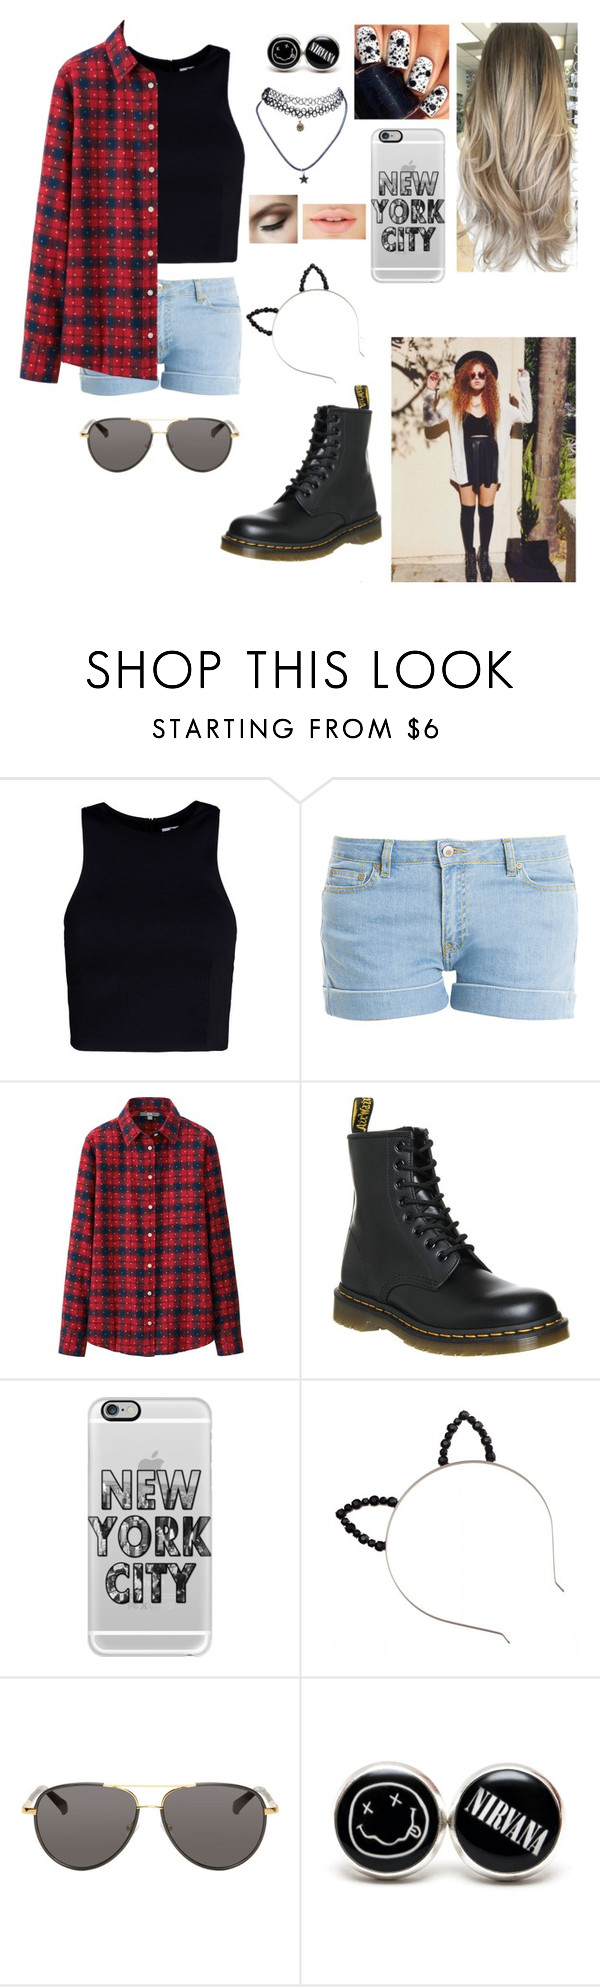 """""""With Mahogany Lox(Queen)"""" by mej979 ❤ liked on Polyvore featuring moda, T By Alexander Wang, Paul & Joe, Uniqlo, Dr. Martens, Casetify, The Row, Wet Seal, women's clothing i women's fashion"""